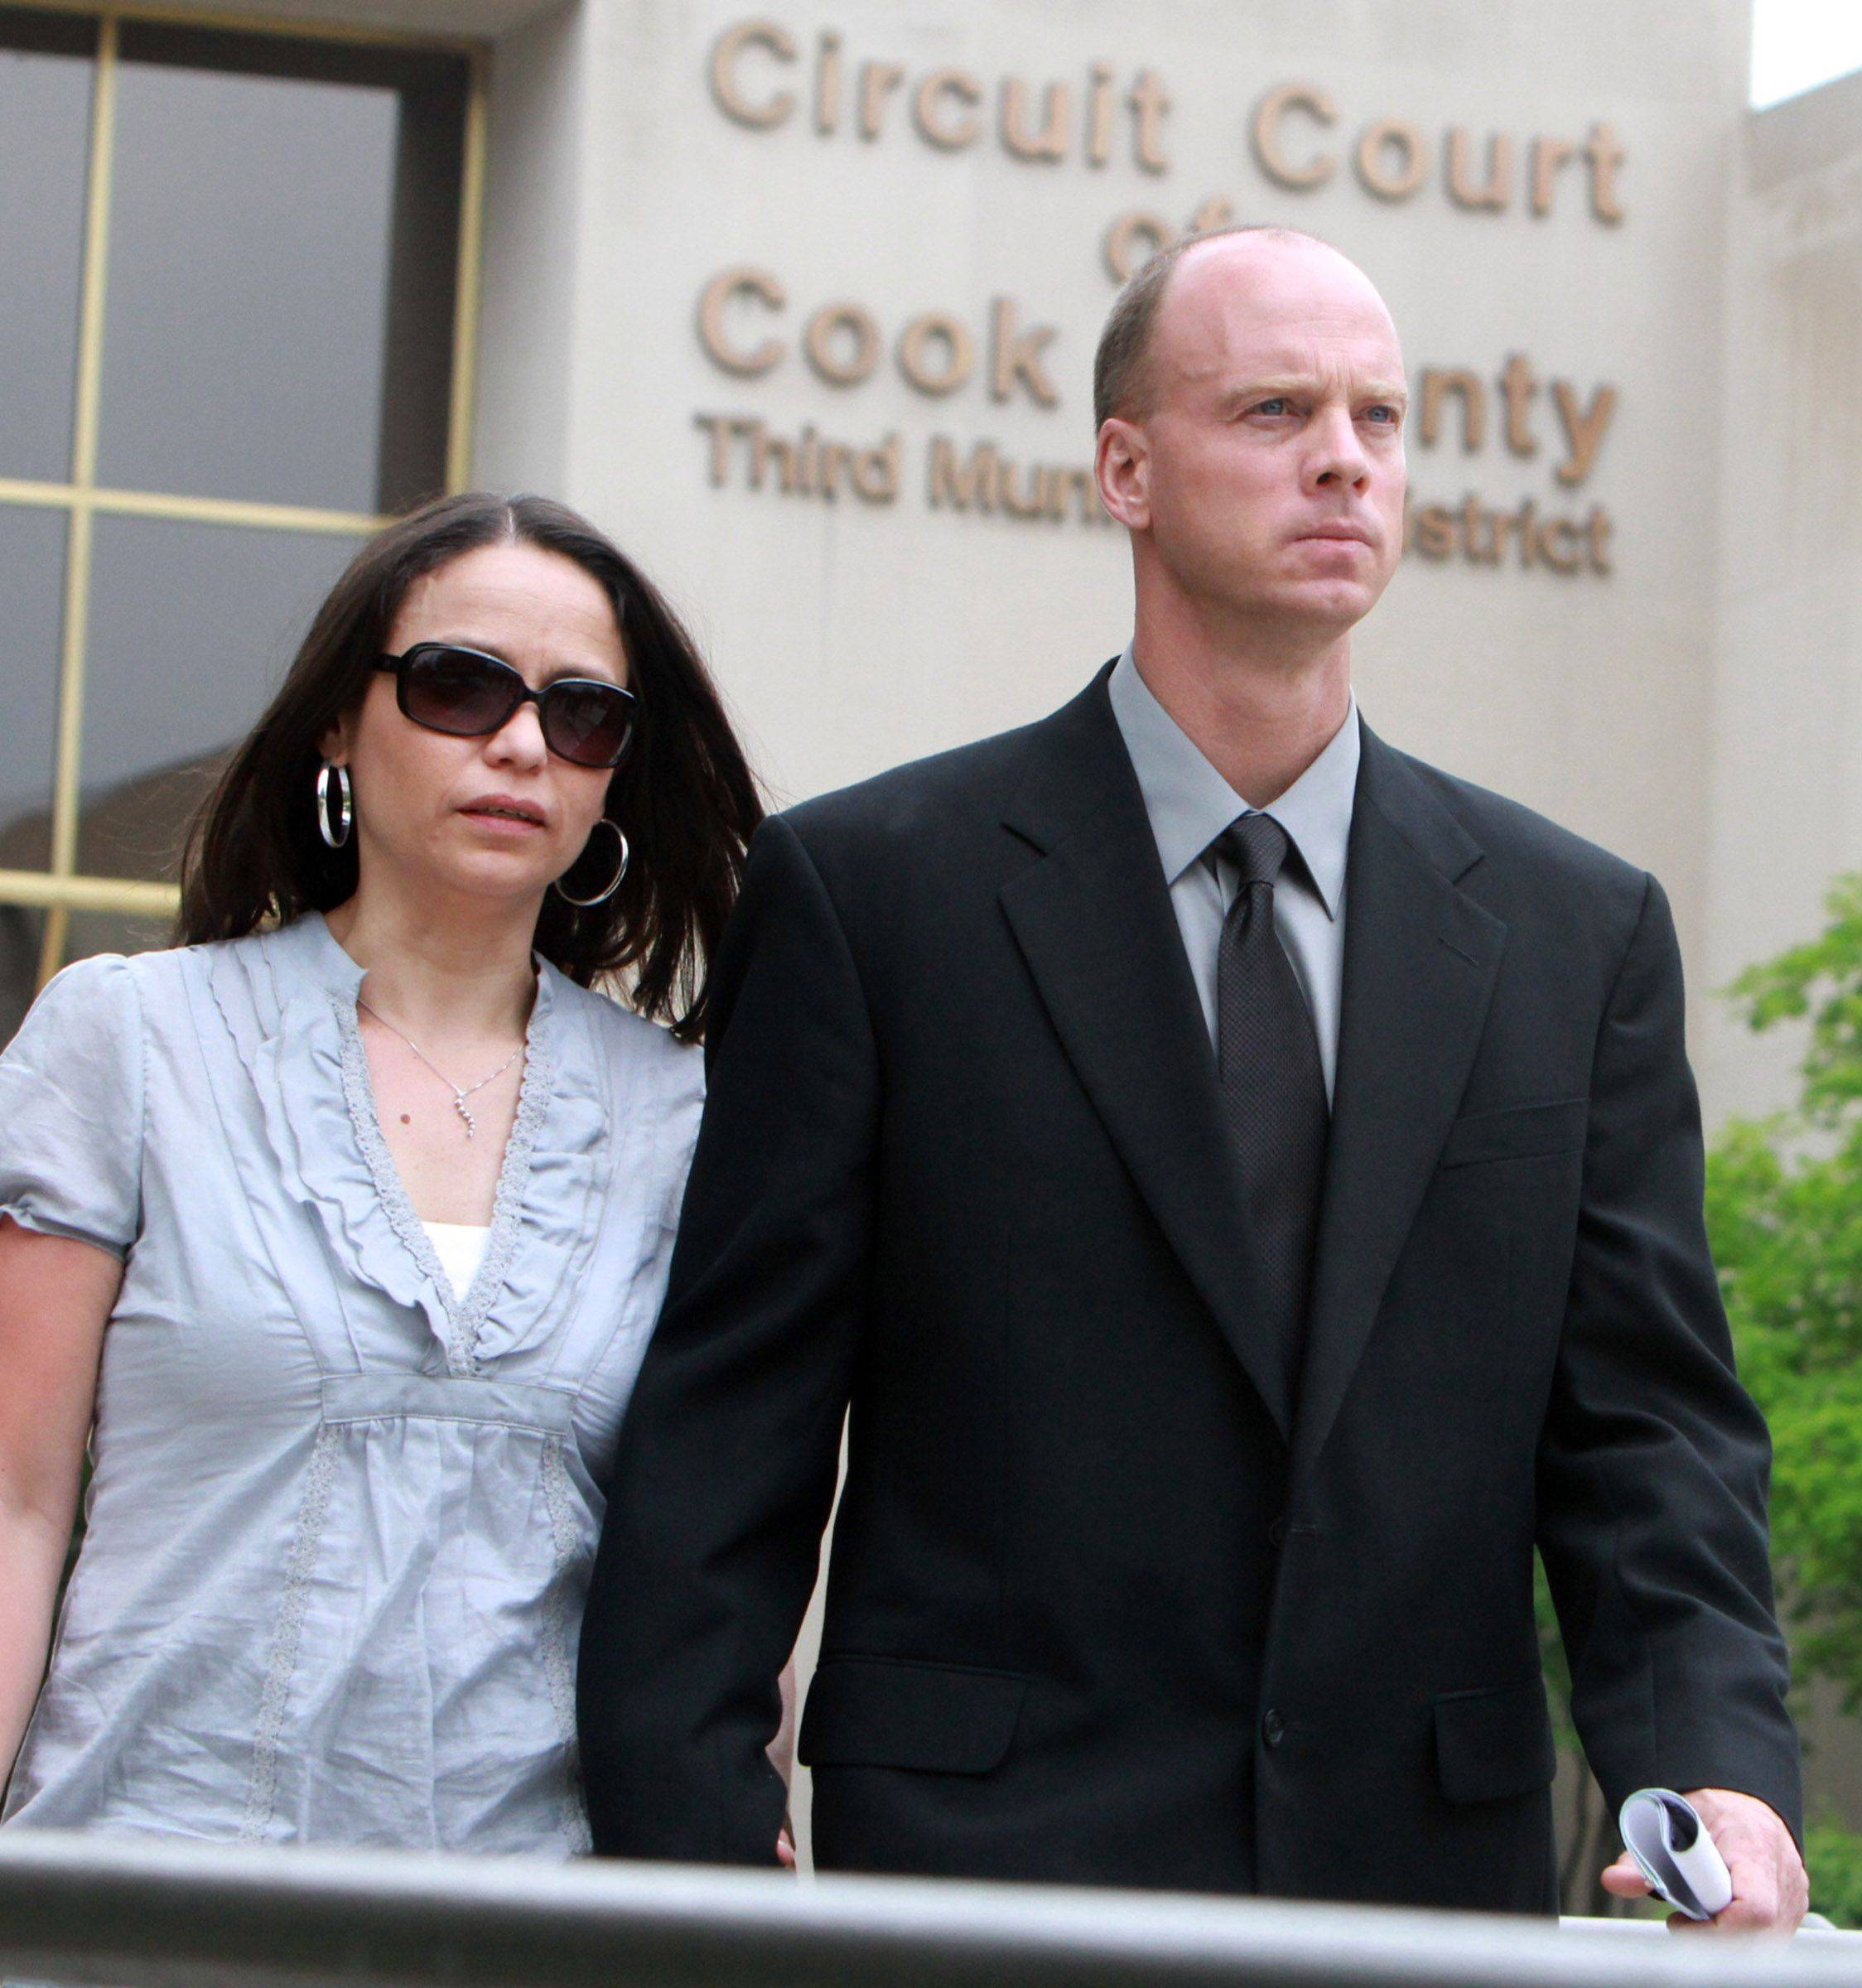 Former Streamwood police officer James Mandarino and his wife, Sophie Mandarino, leave the Cook County courthouse in Rolling Meadows after his sentencing hearing Tuesday.